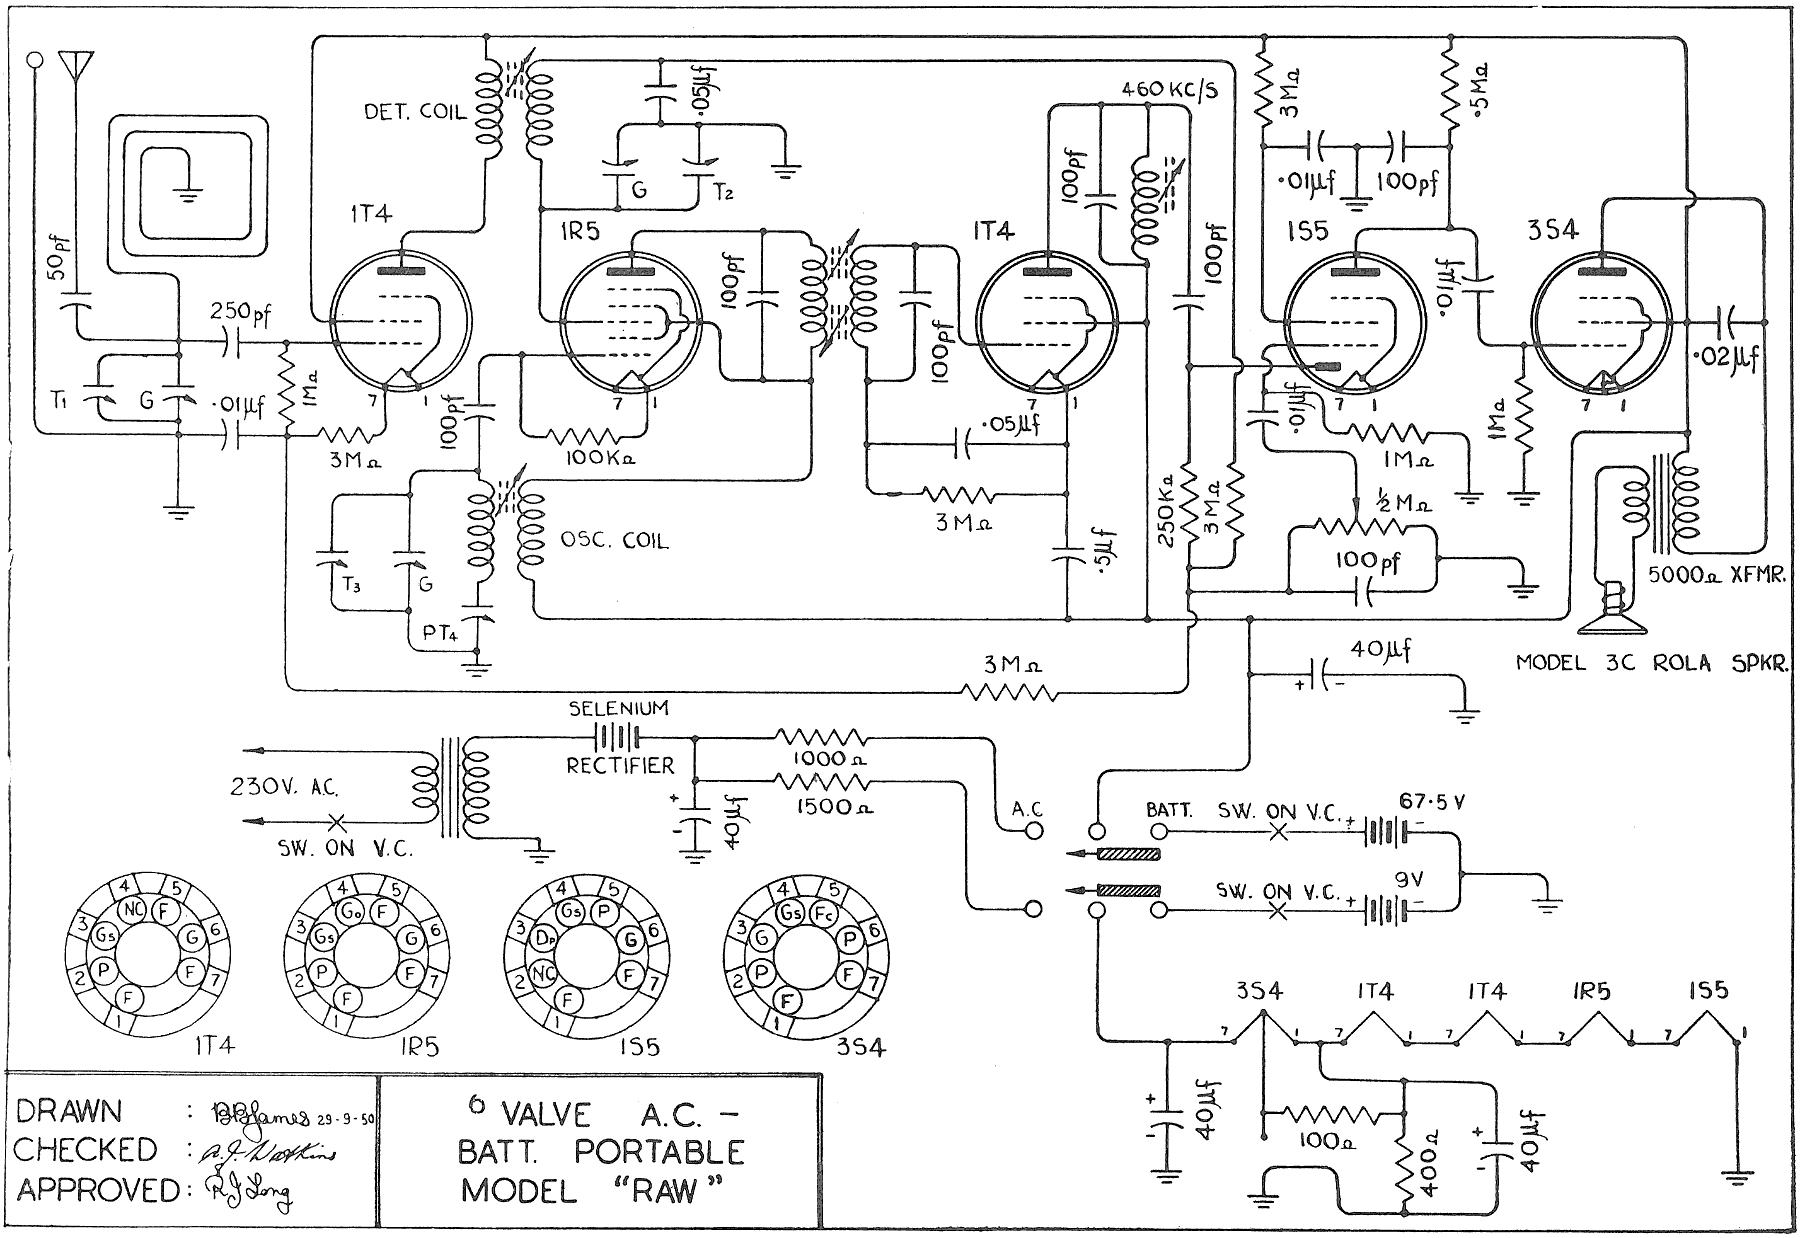 1951 Ultimate RAW Schematic